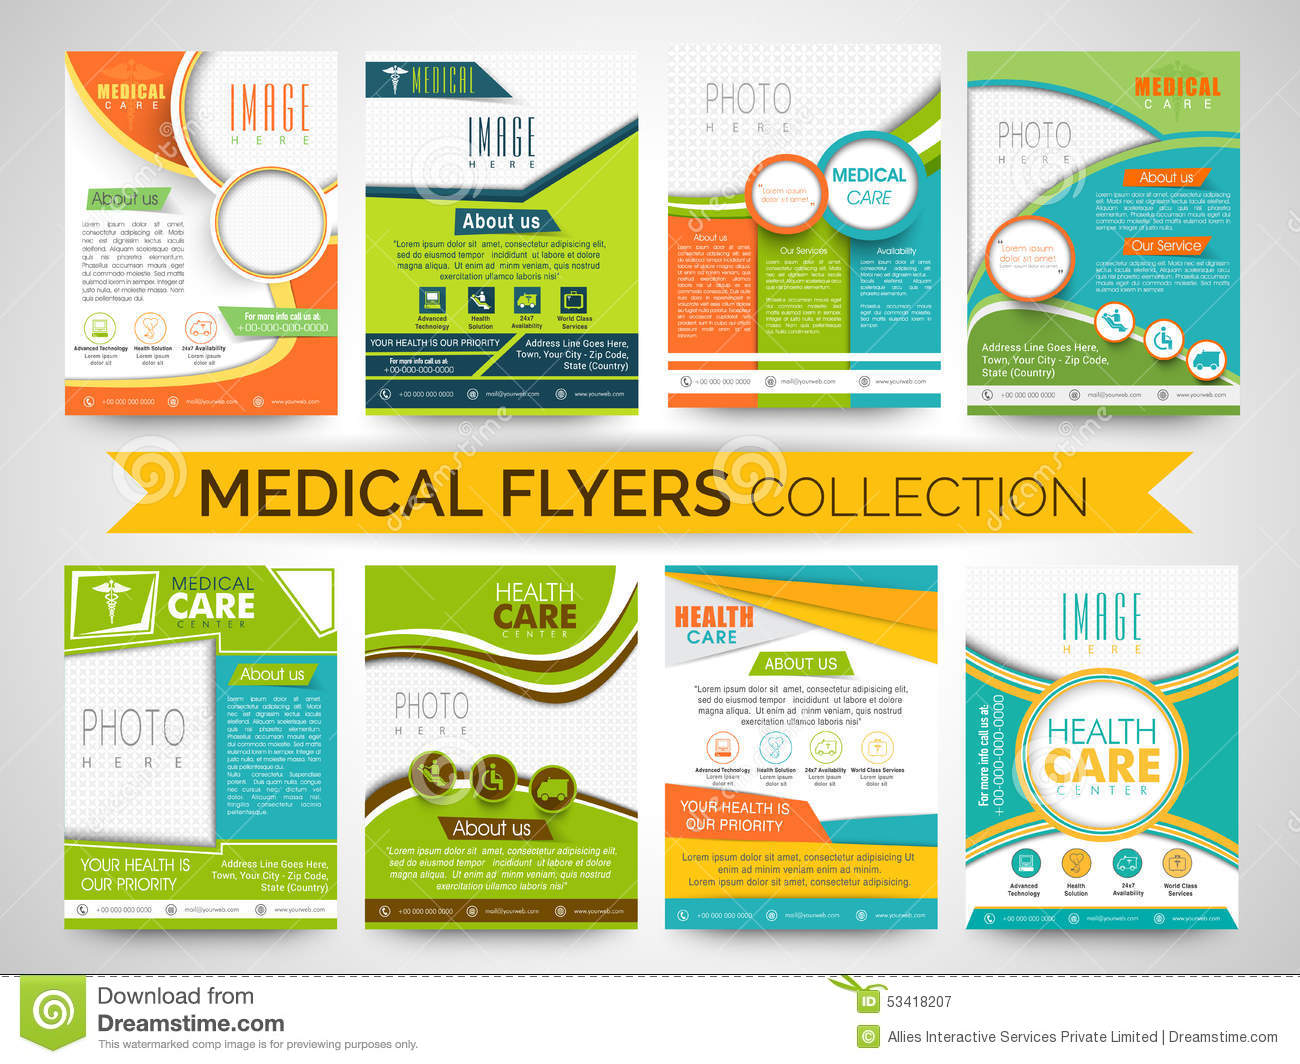 free templates for flyers and brochures - stylish medical flyers templates or brochures collection